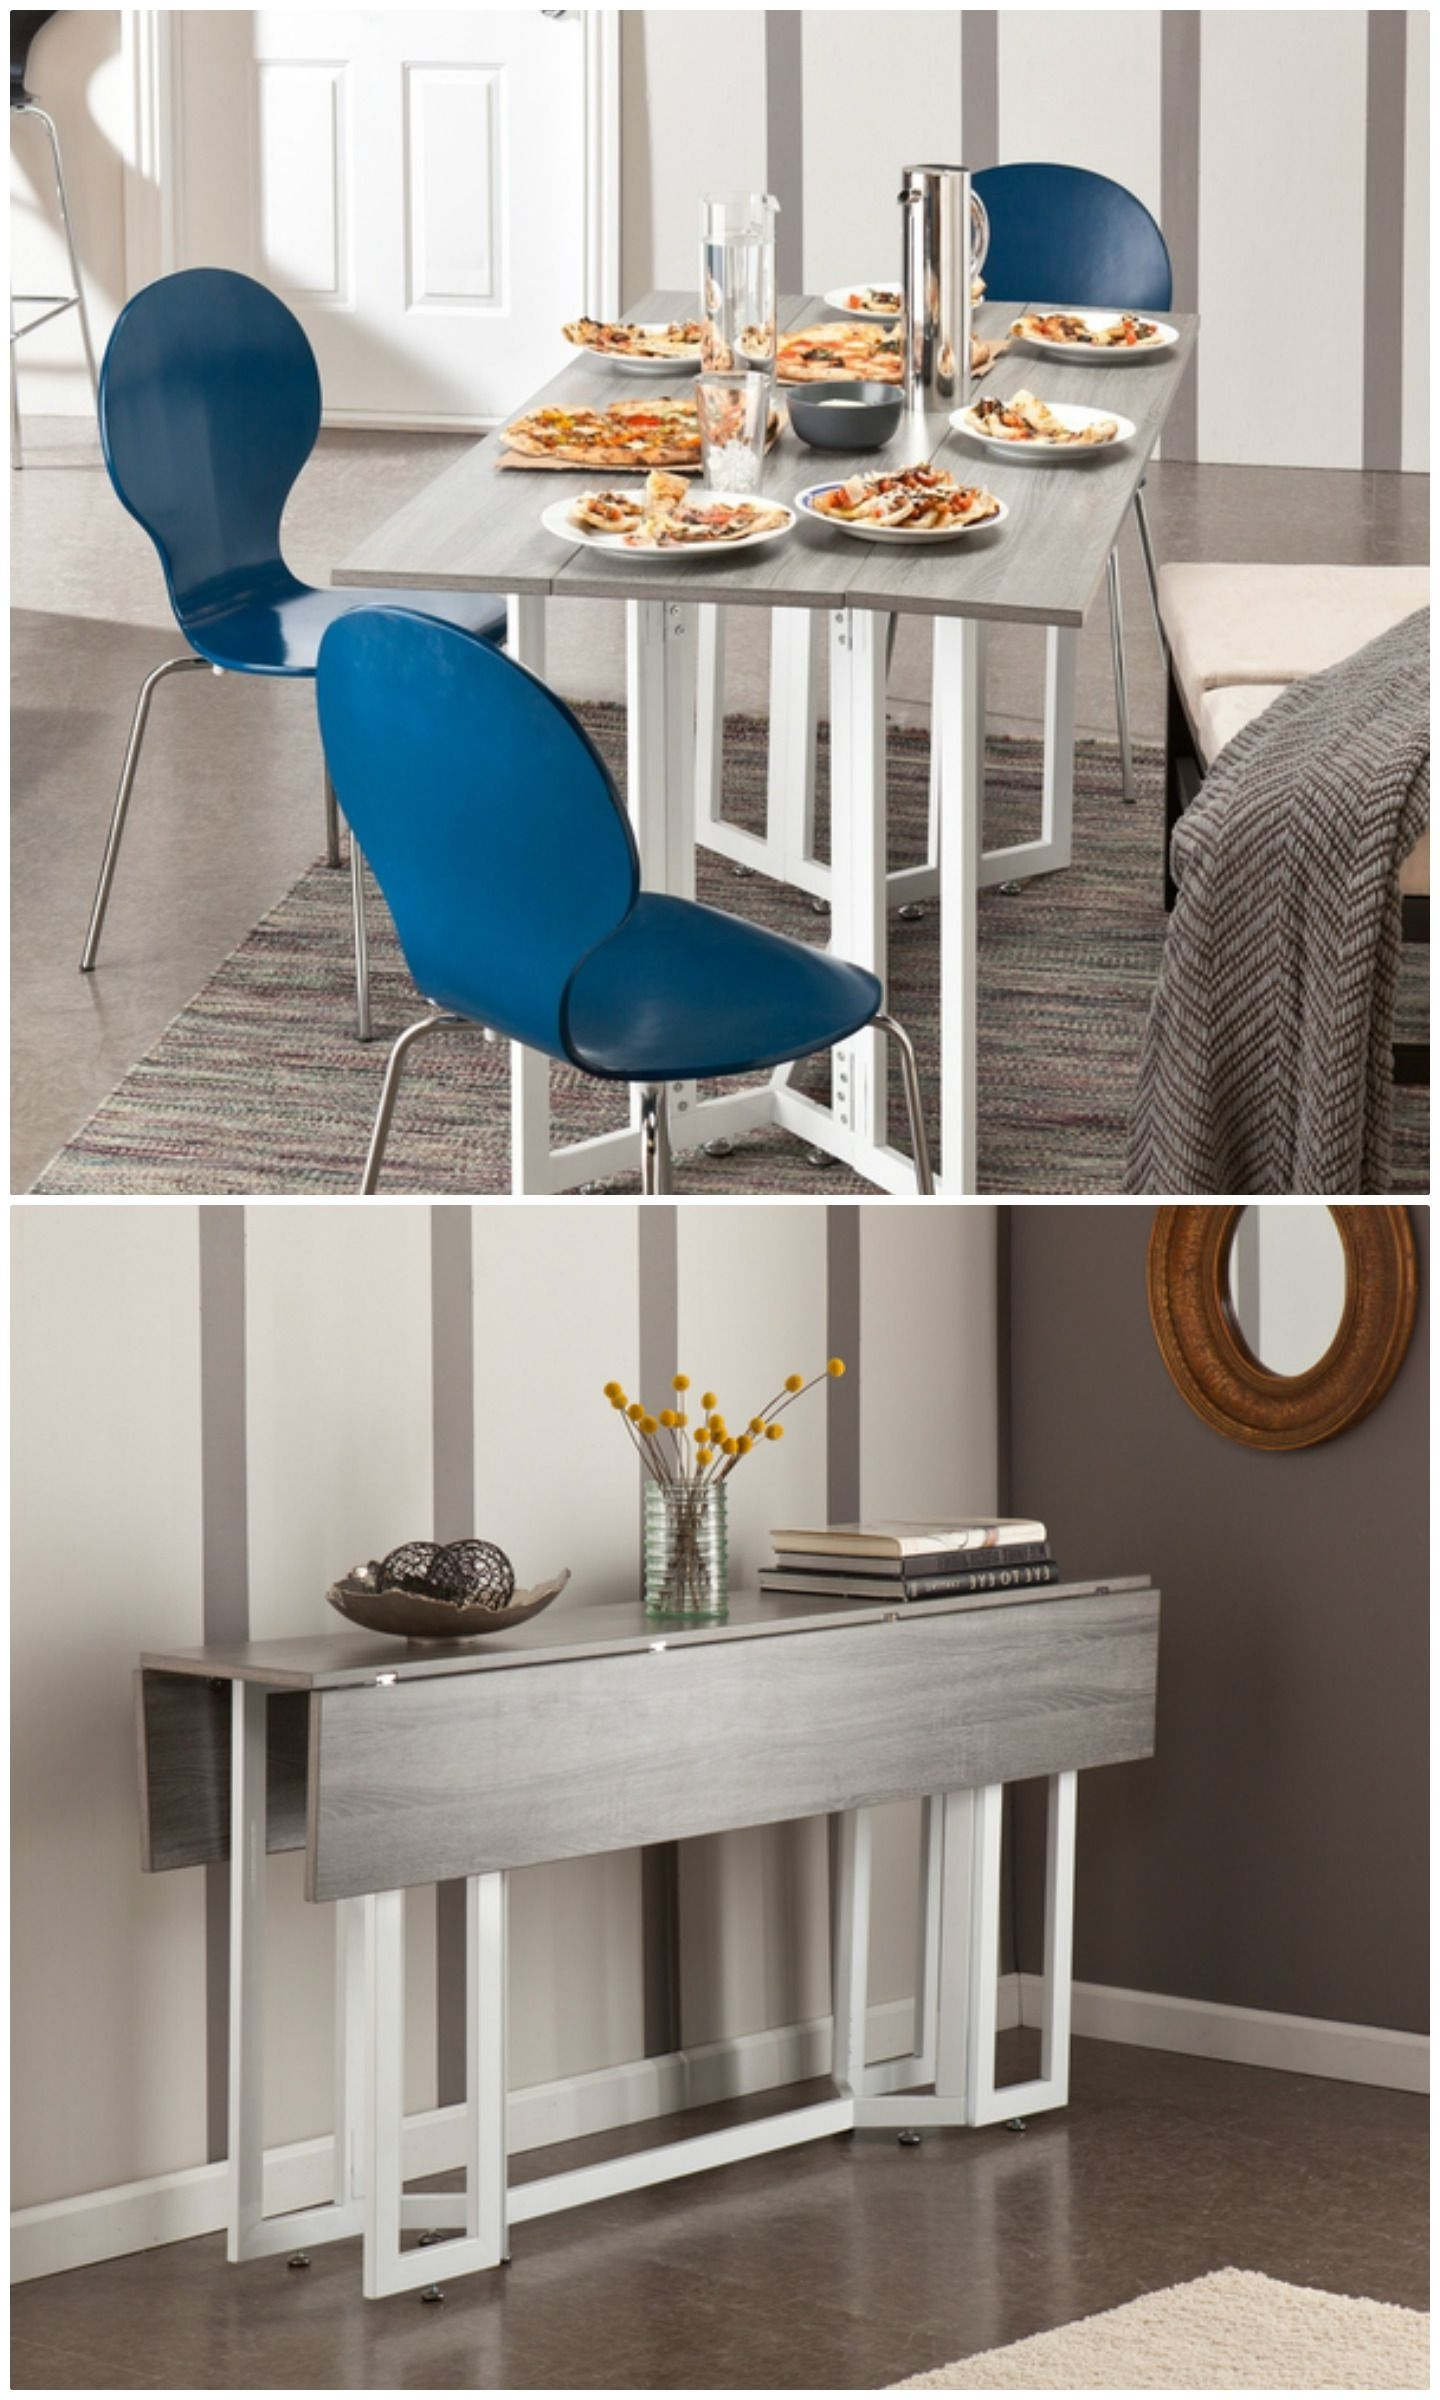 Preferred Twenty Dining Tables That Work Great In Small Spaces (View 10 of 25)